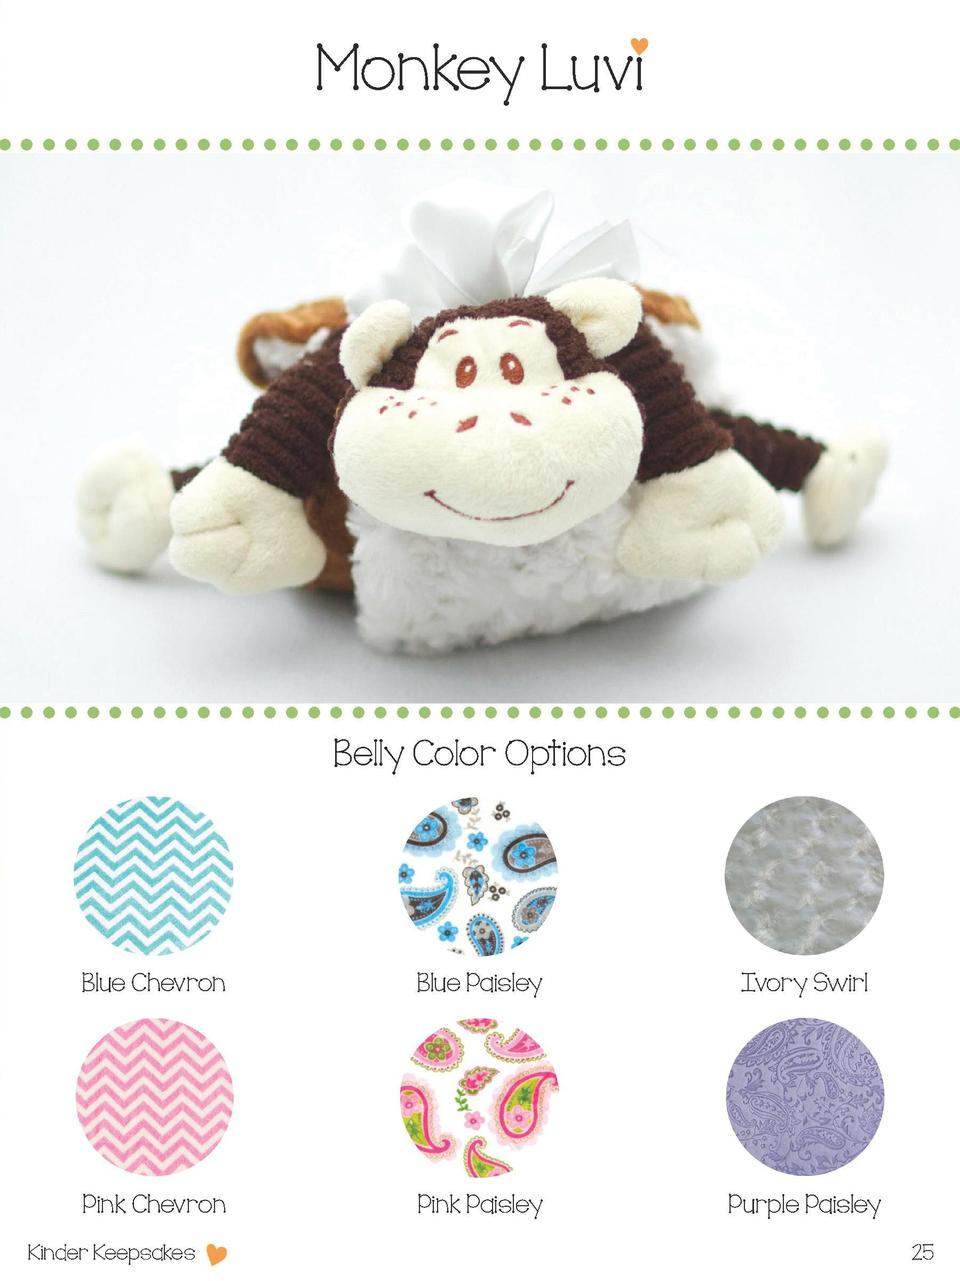 Monkey Luvi  Belly Color Options  Blue Chevron  Blue Paisley  Ivory Swirl  Pink Chevron  Pink Paisley  Purple Paisley  Kin...